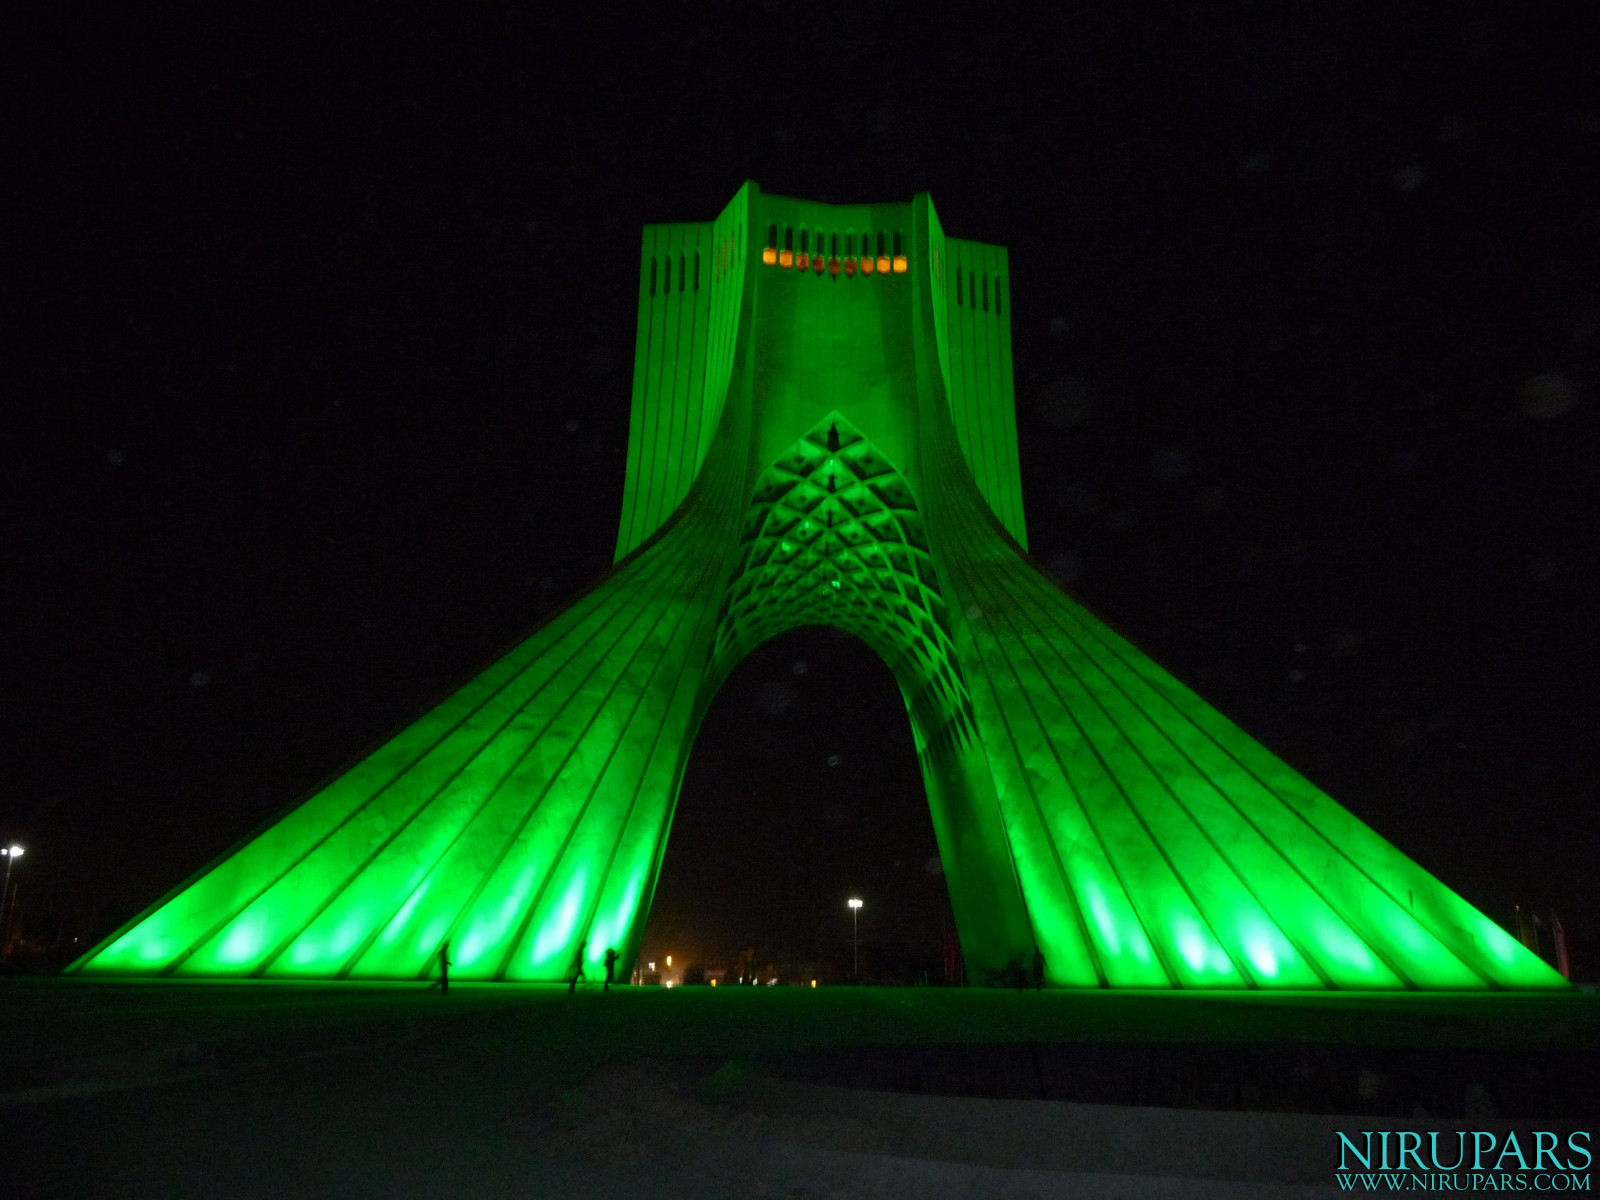 Meydan-e Azadi - Night Green